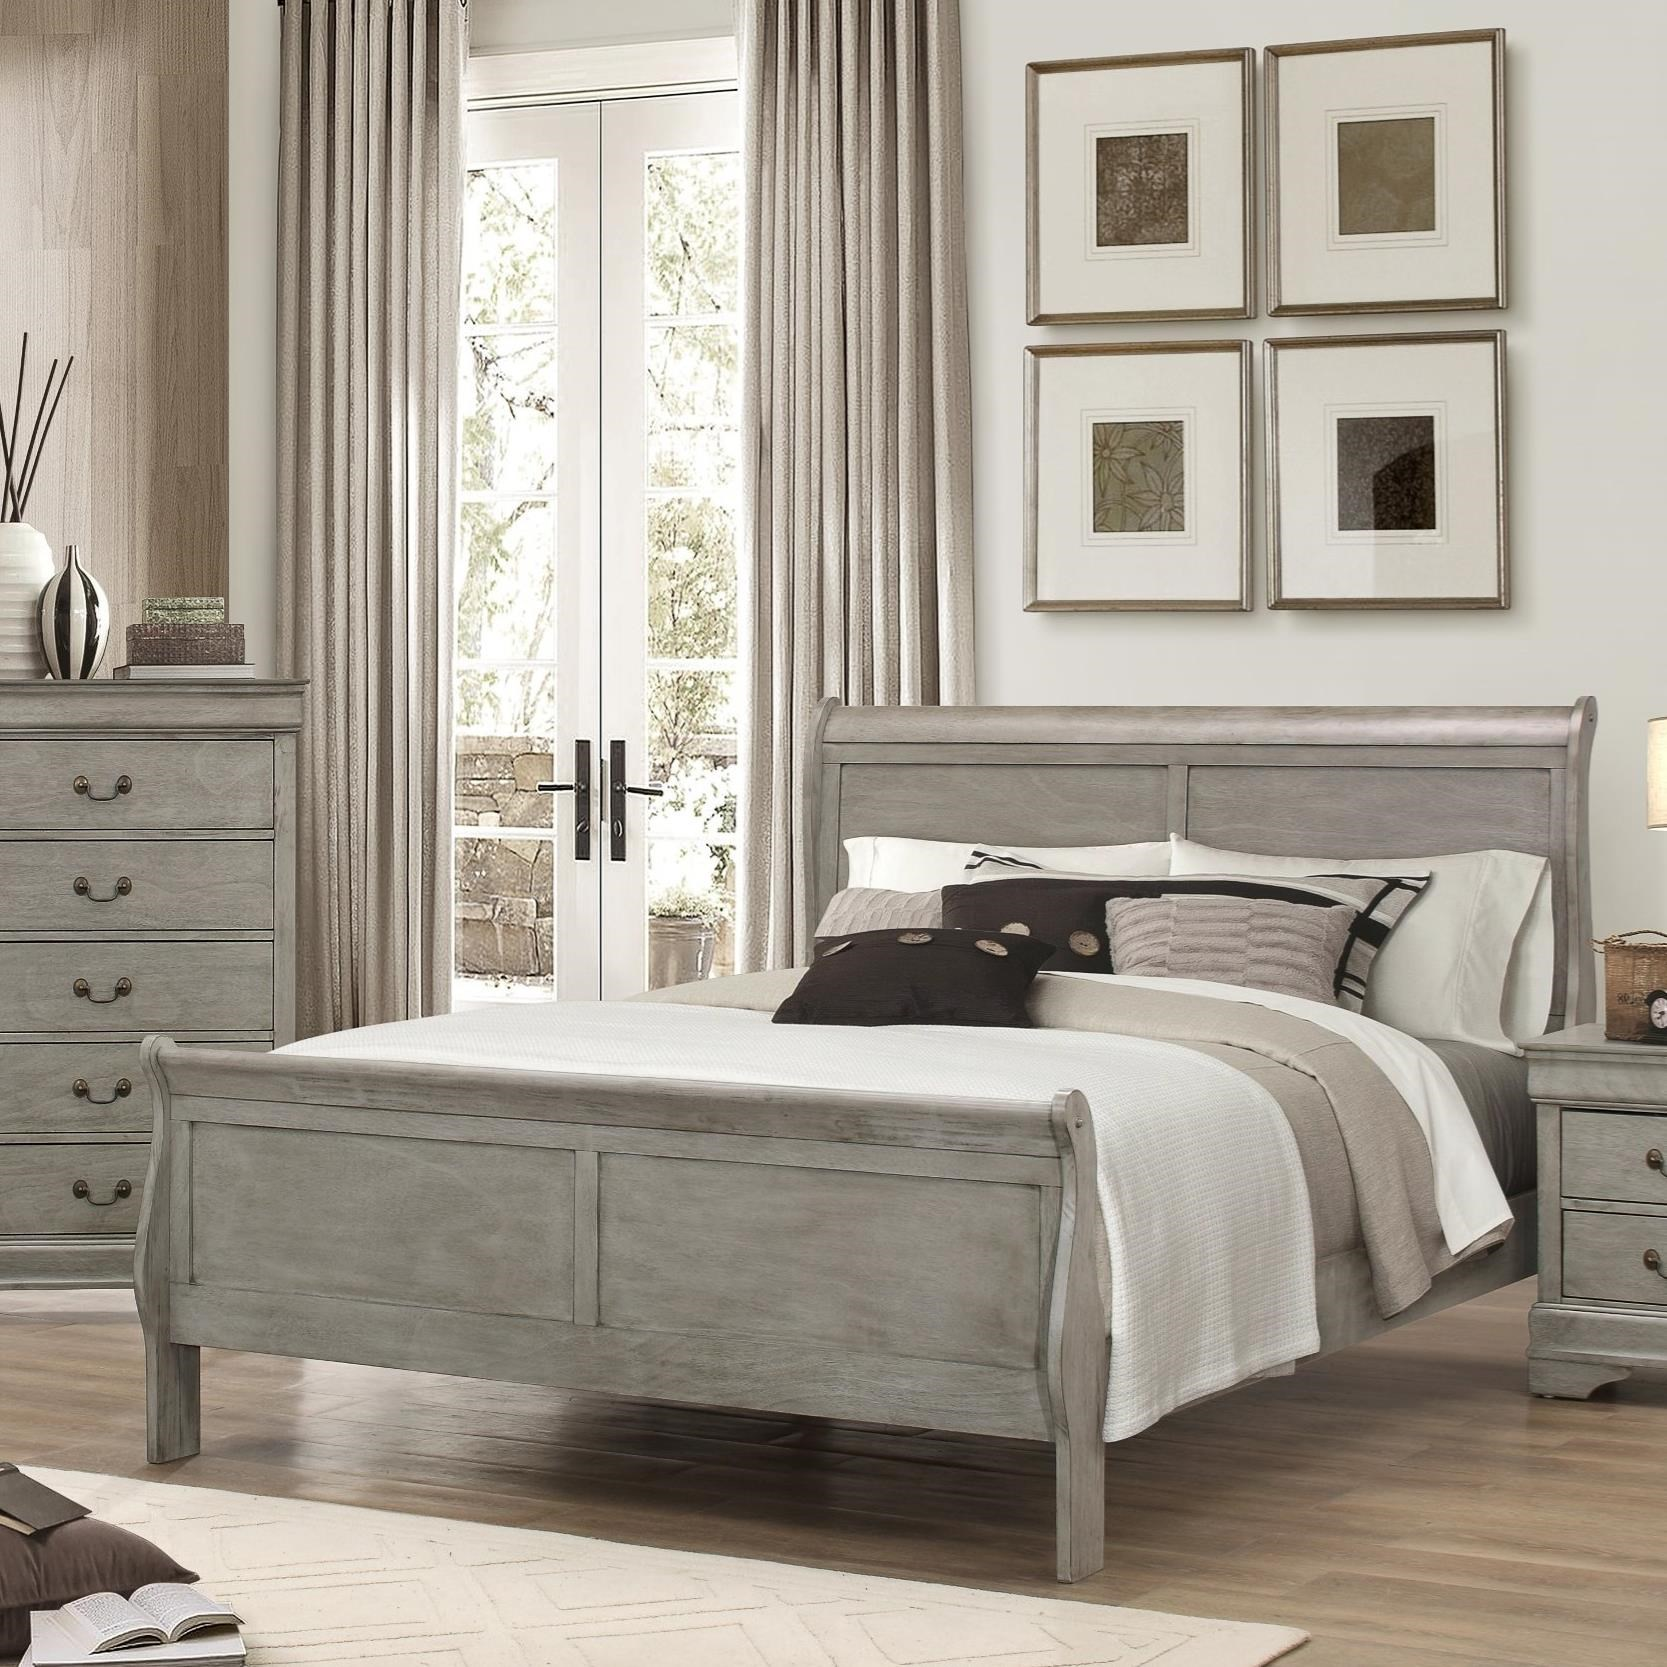 Crown Mark Louis Phillipe Twin Bed - Item Number: B3500-T-HBFB+RAIL